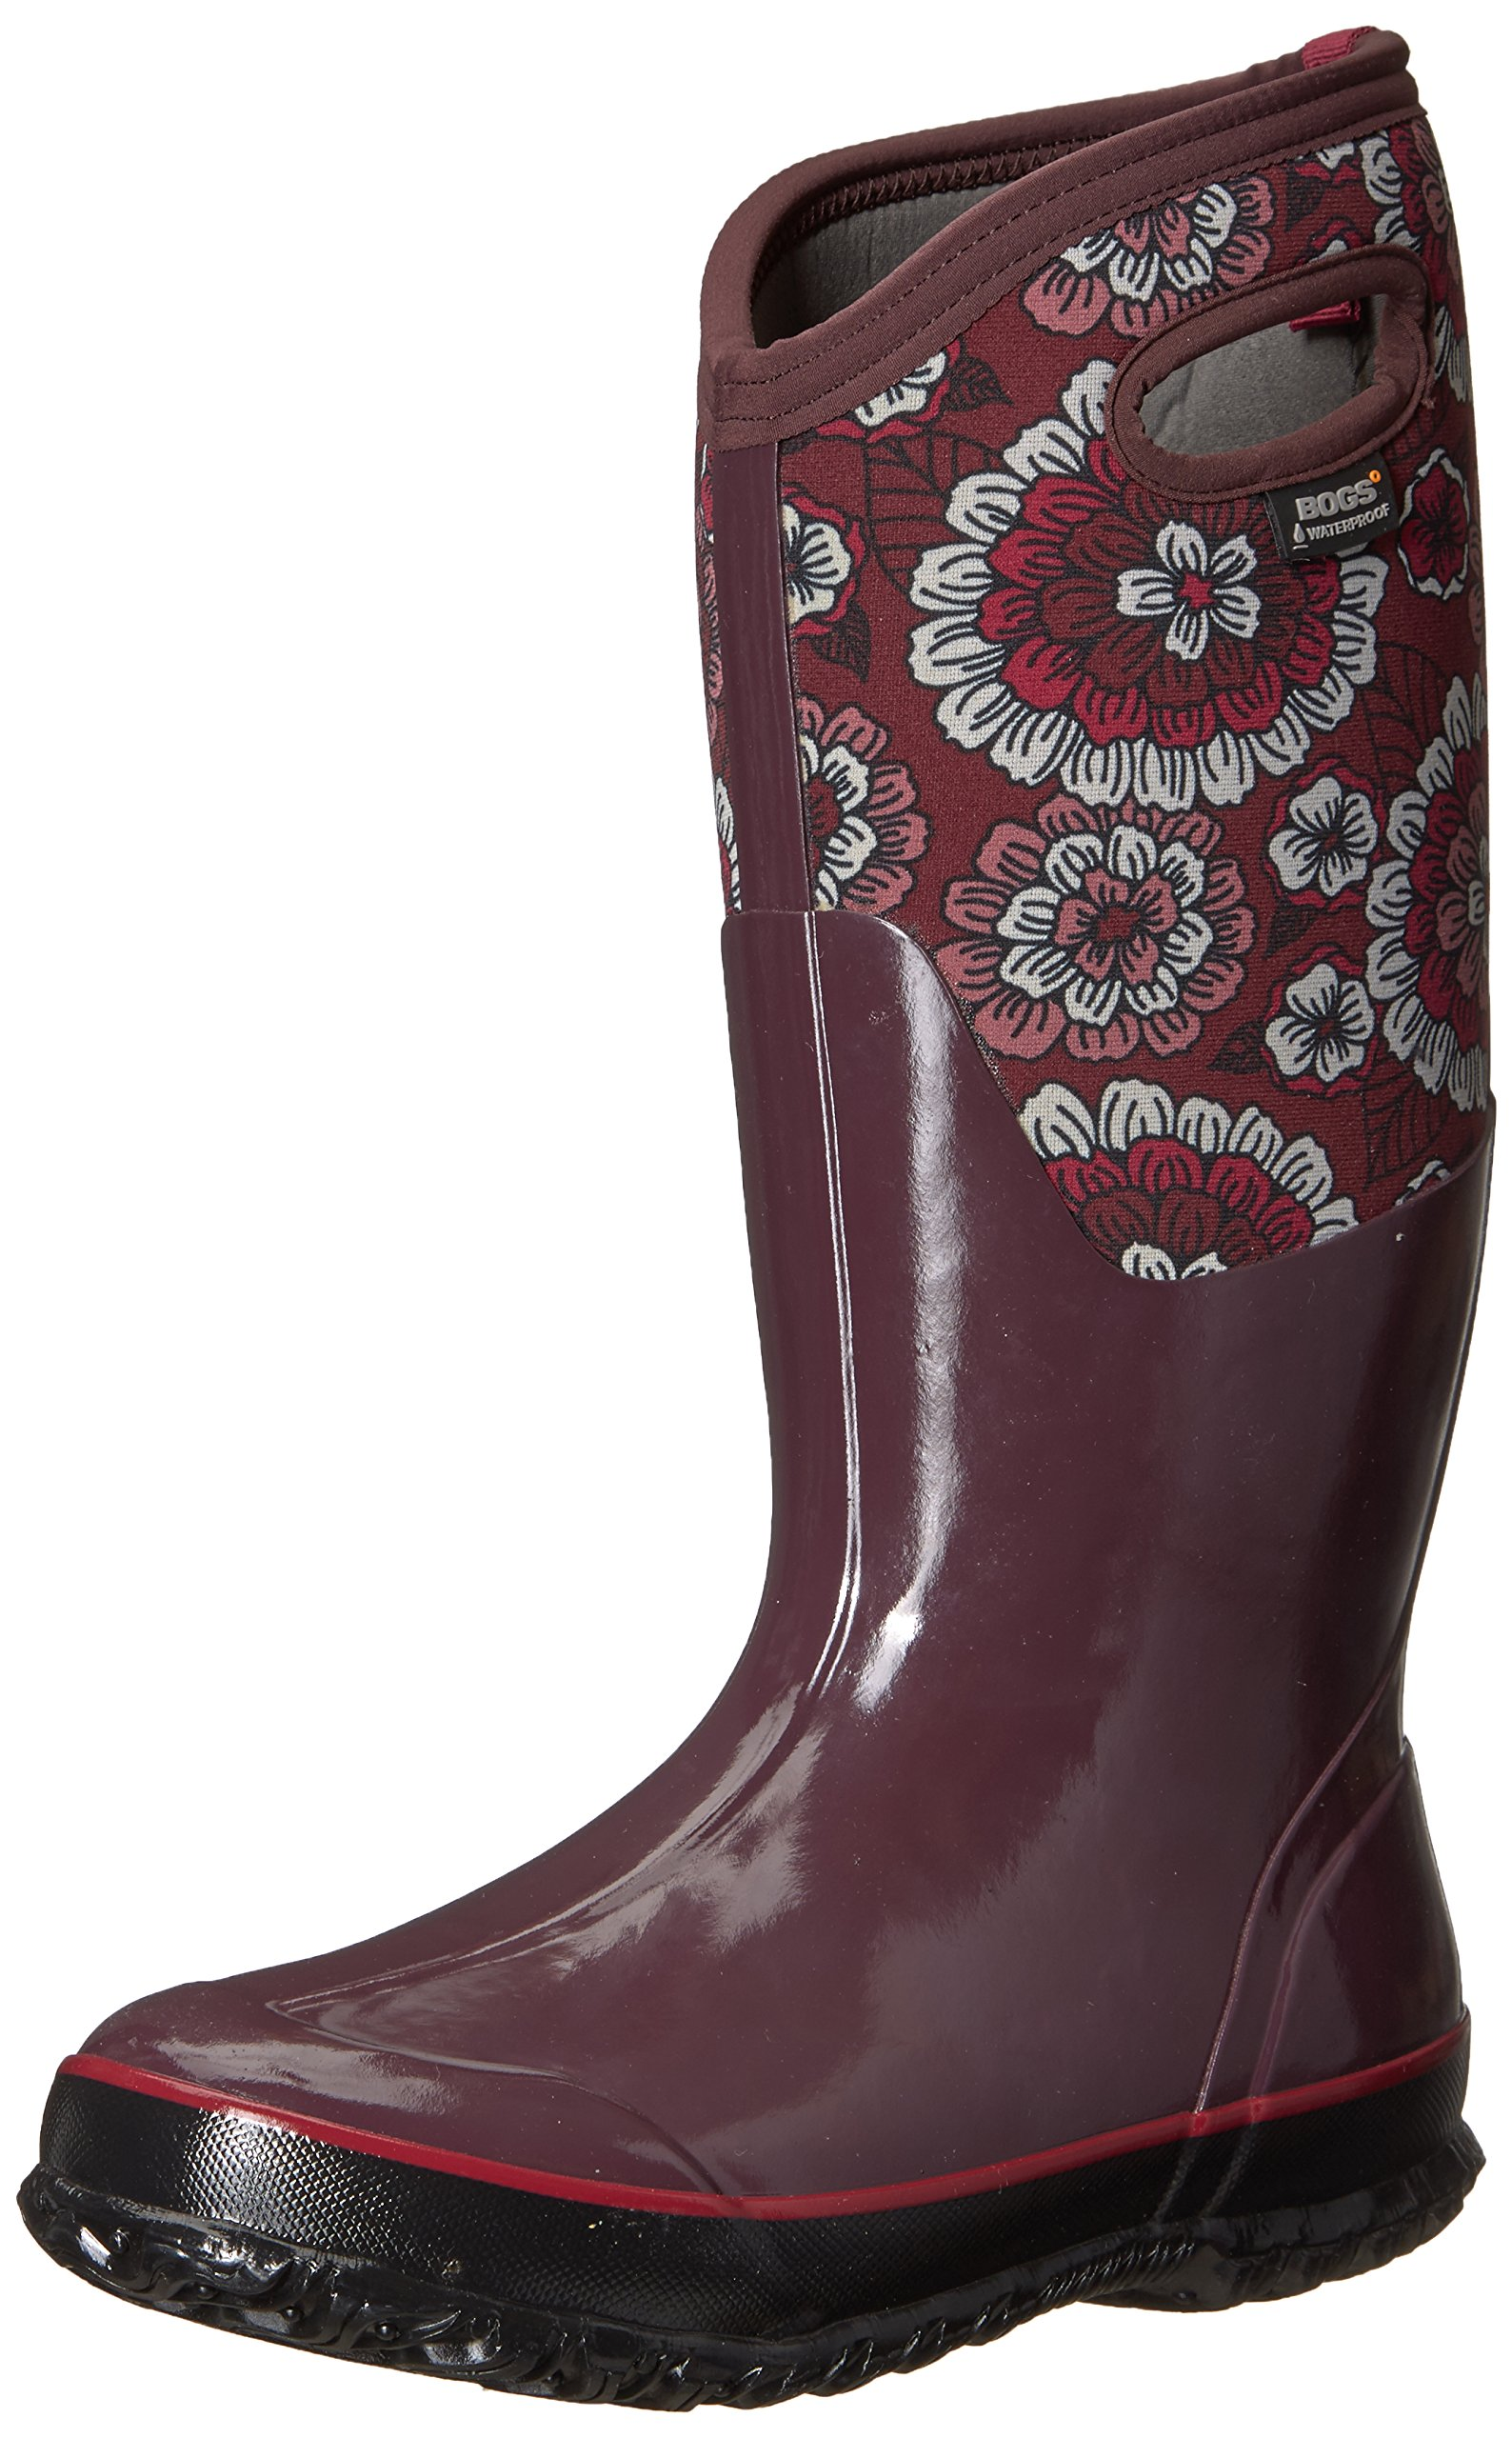 Bogs Women's Classic Pansies Snow Boot, Berry Multi, 8 M US by Bogs